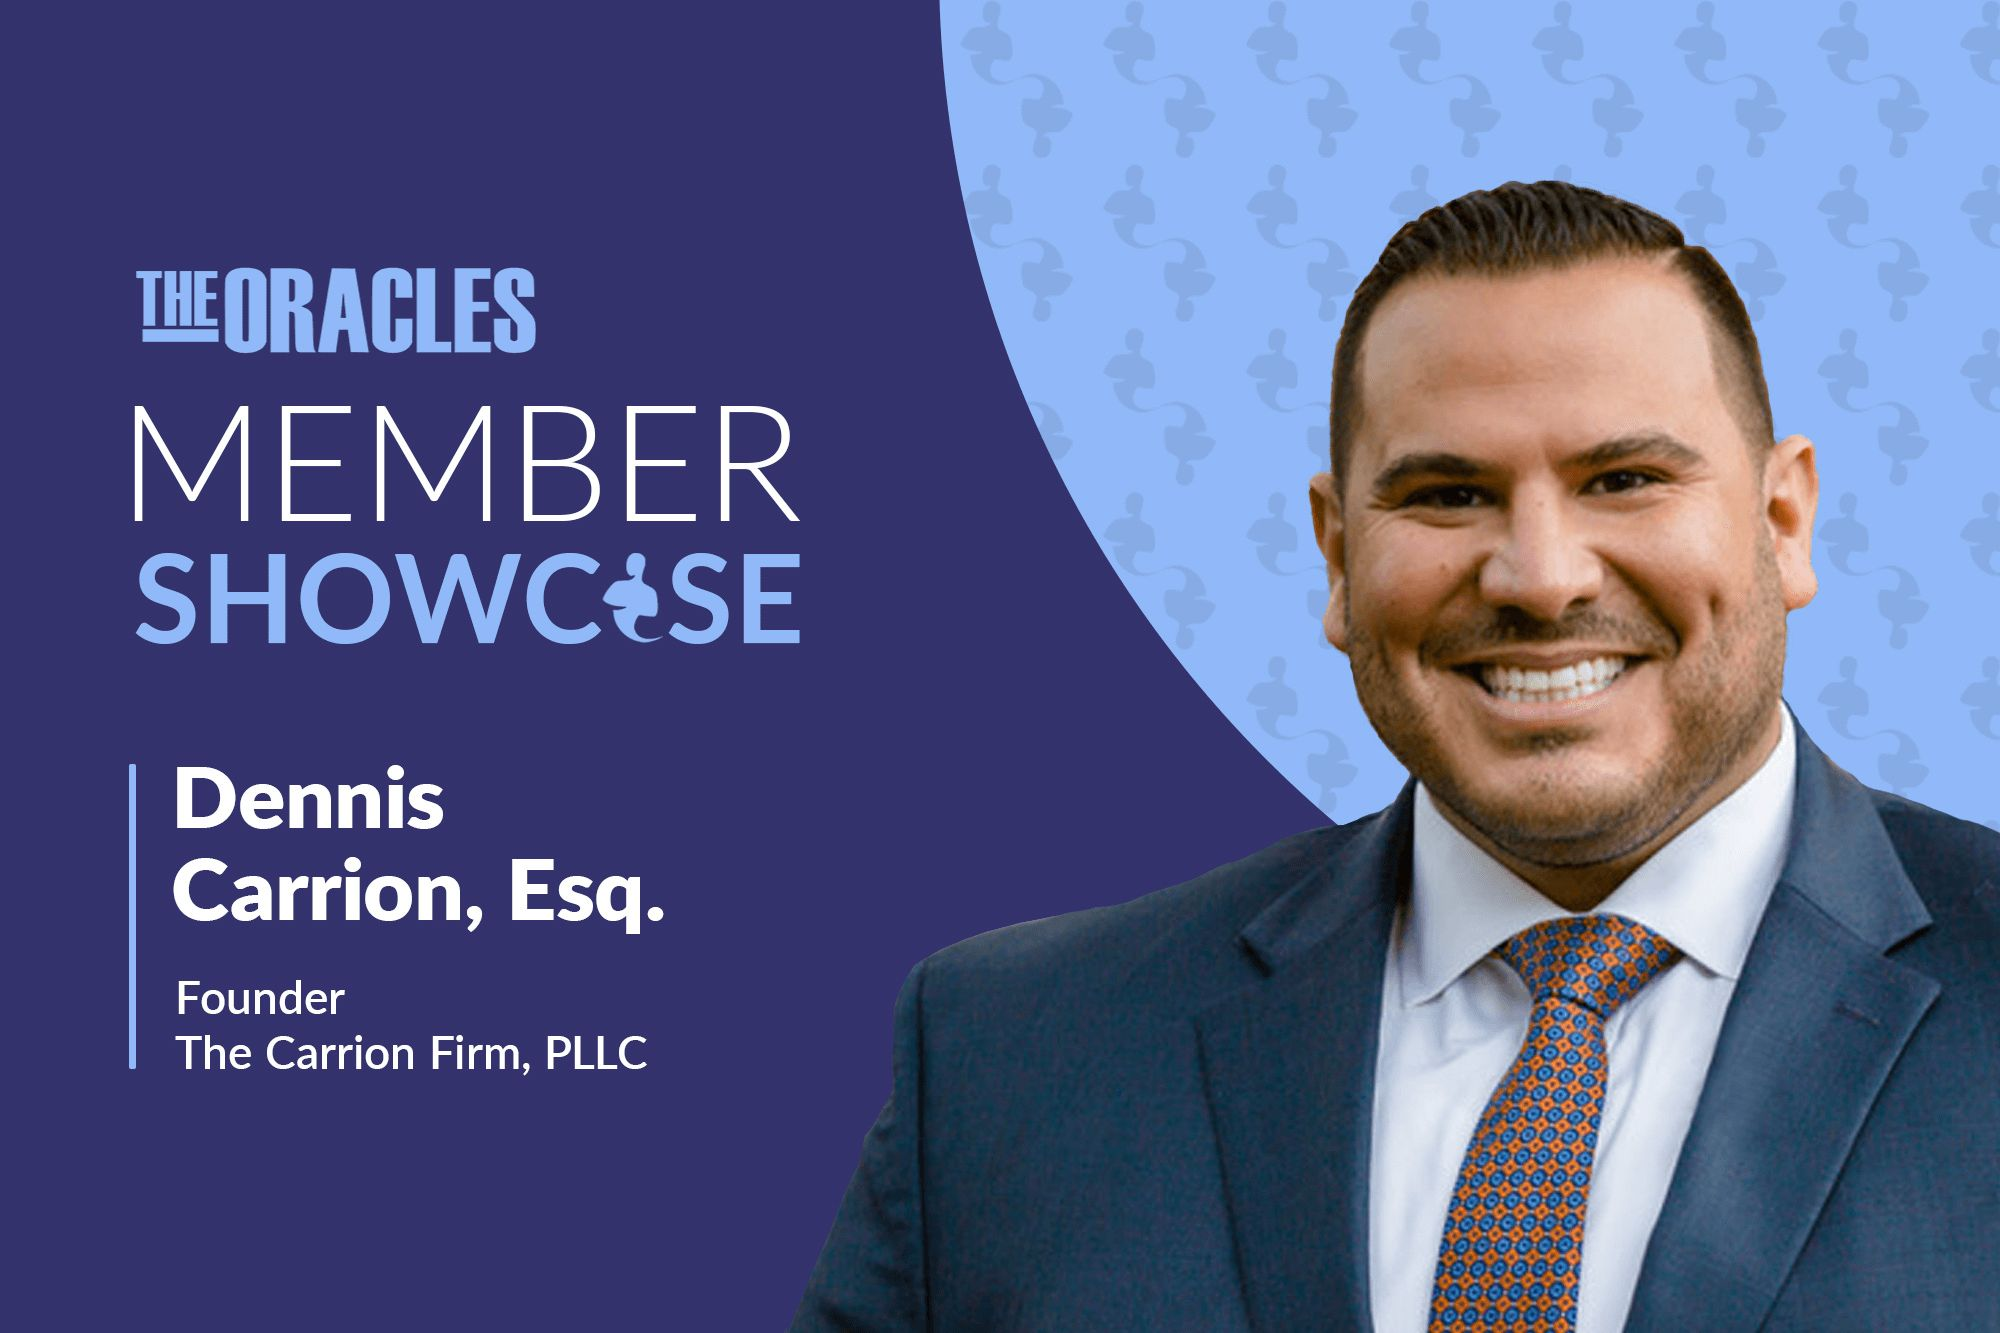 Attorney Dennis Carrion on the Art of Negotiation, Championing the Injured, and Following Your Passion